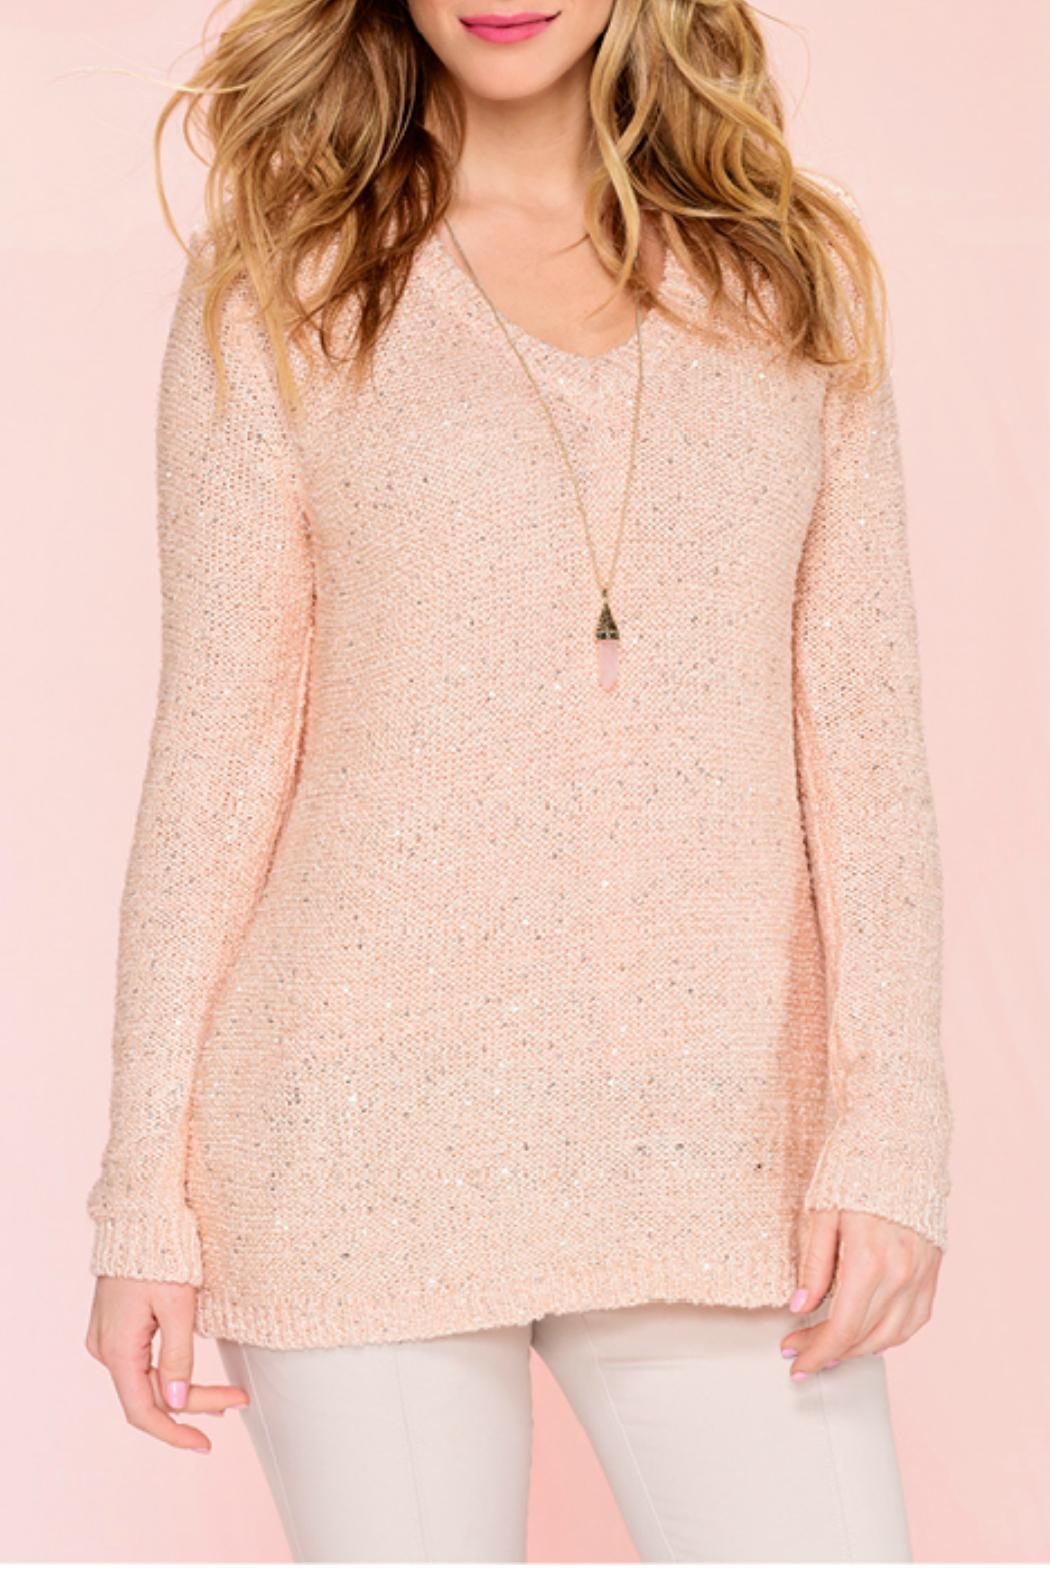 Charlie Paige Sequinned Knit Sweater - Back Cropped Image